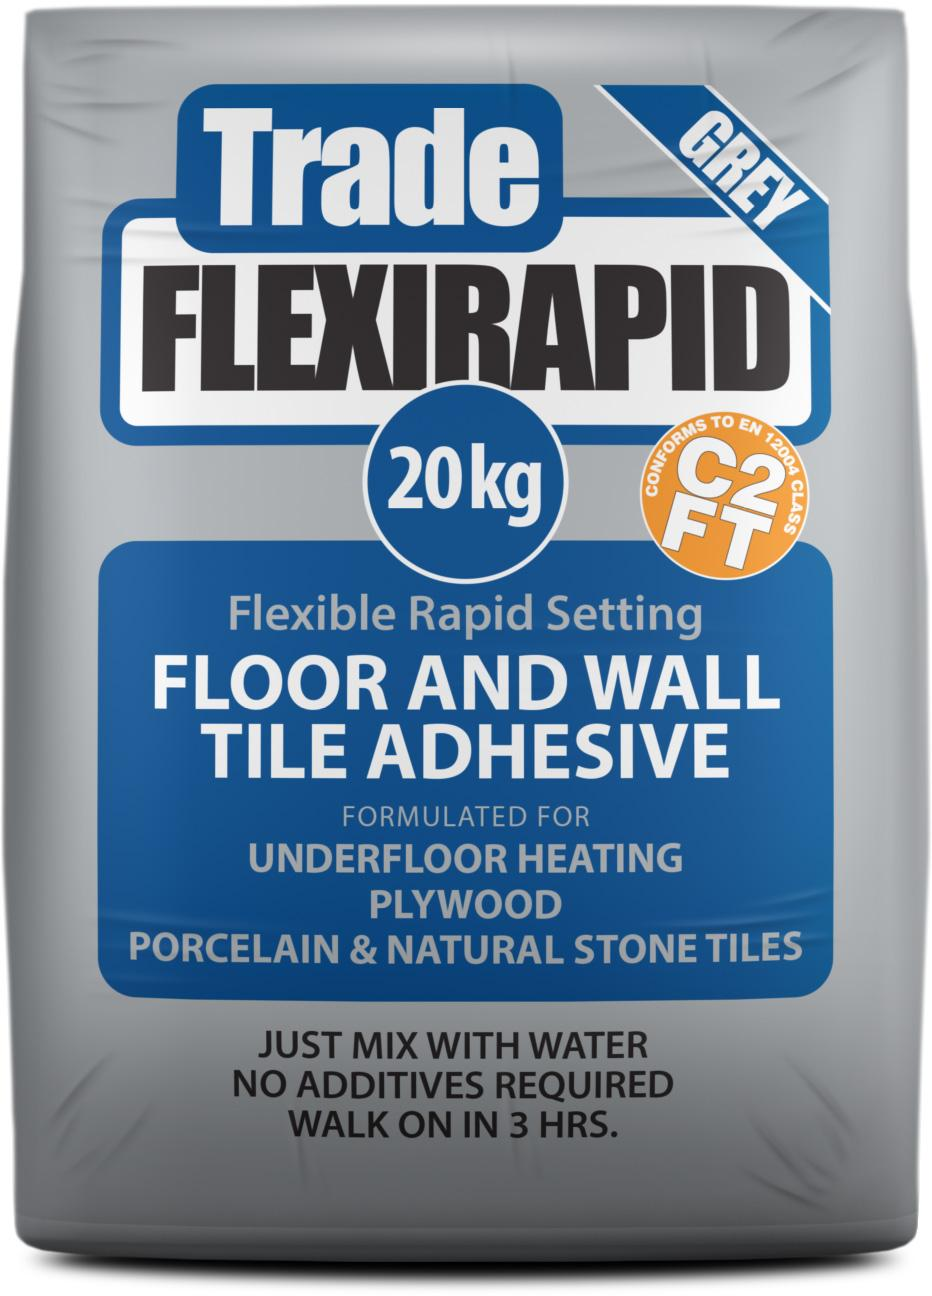 Tilemaster Trade Flexi Rapid Adhesive 20kg White Or Grey